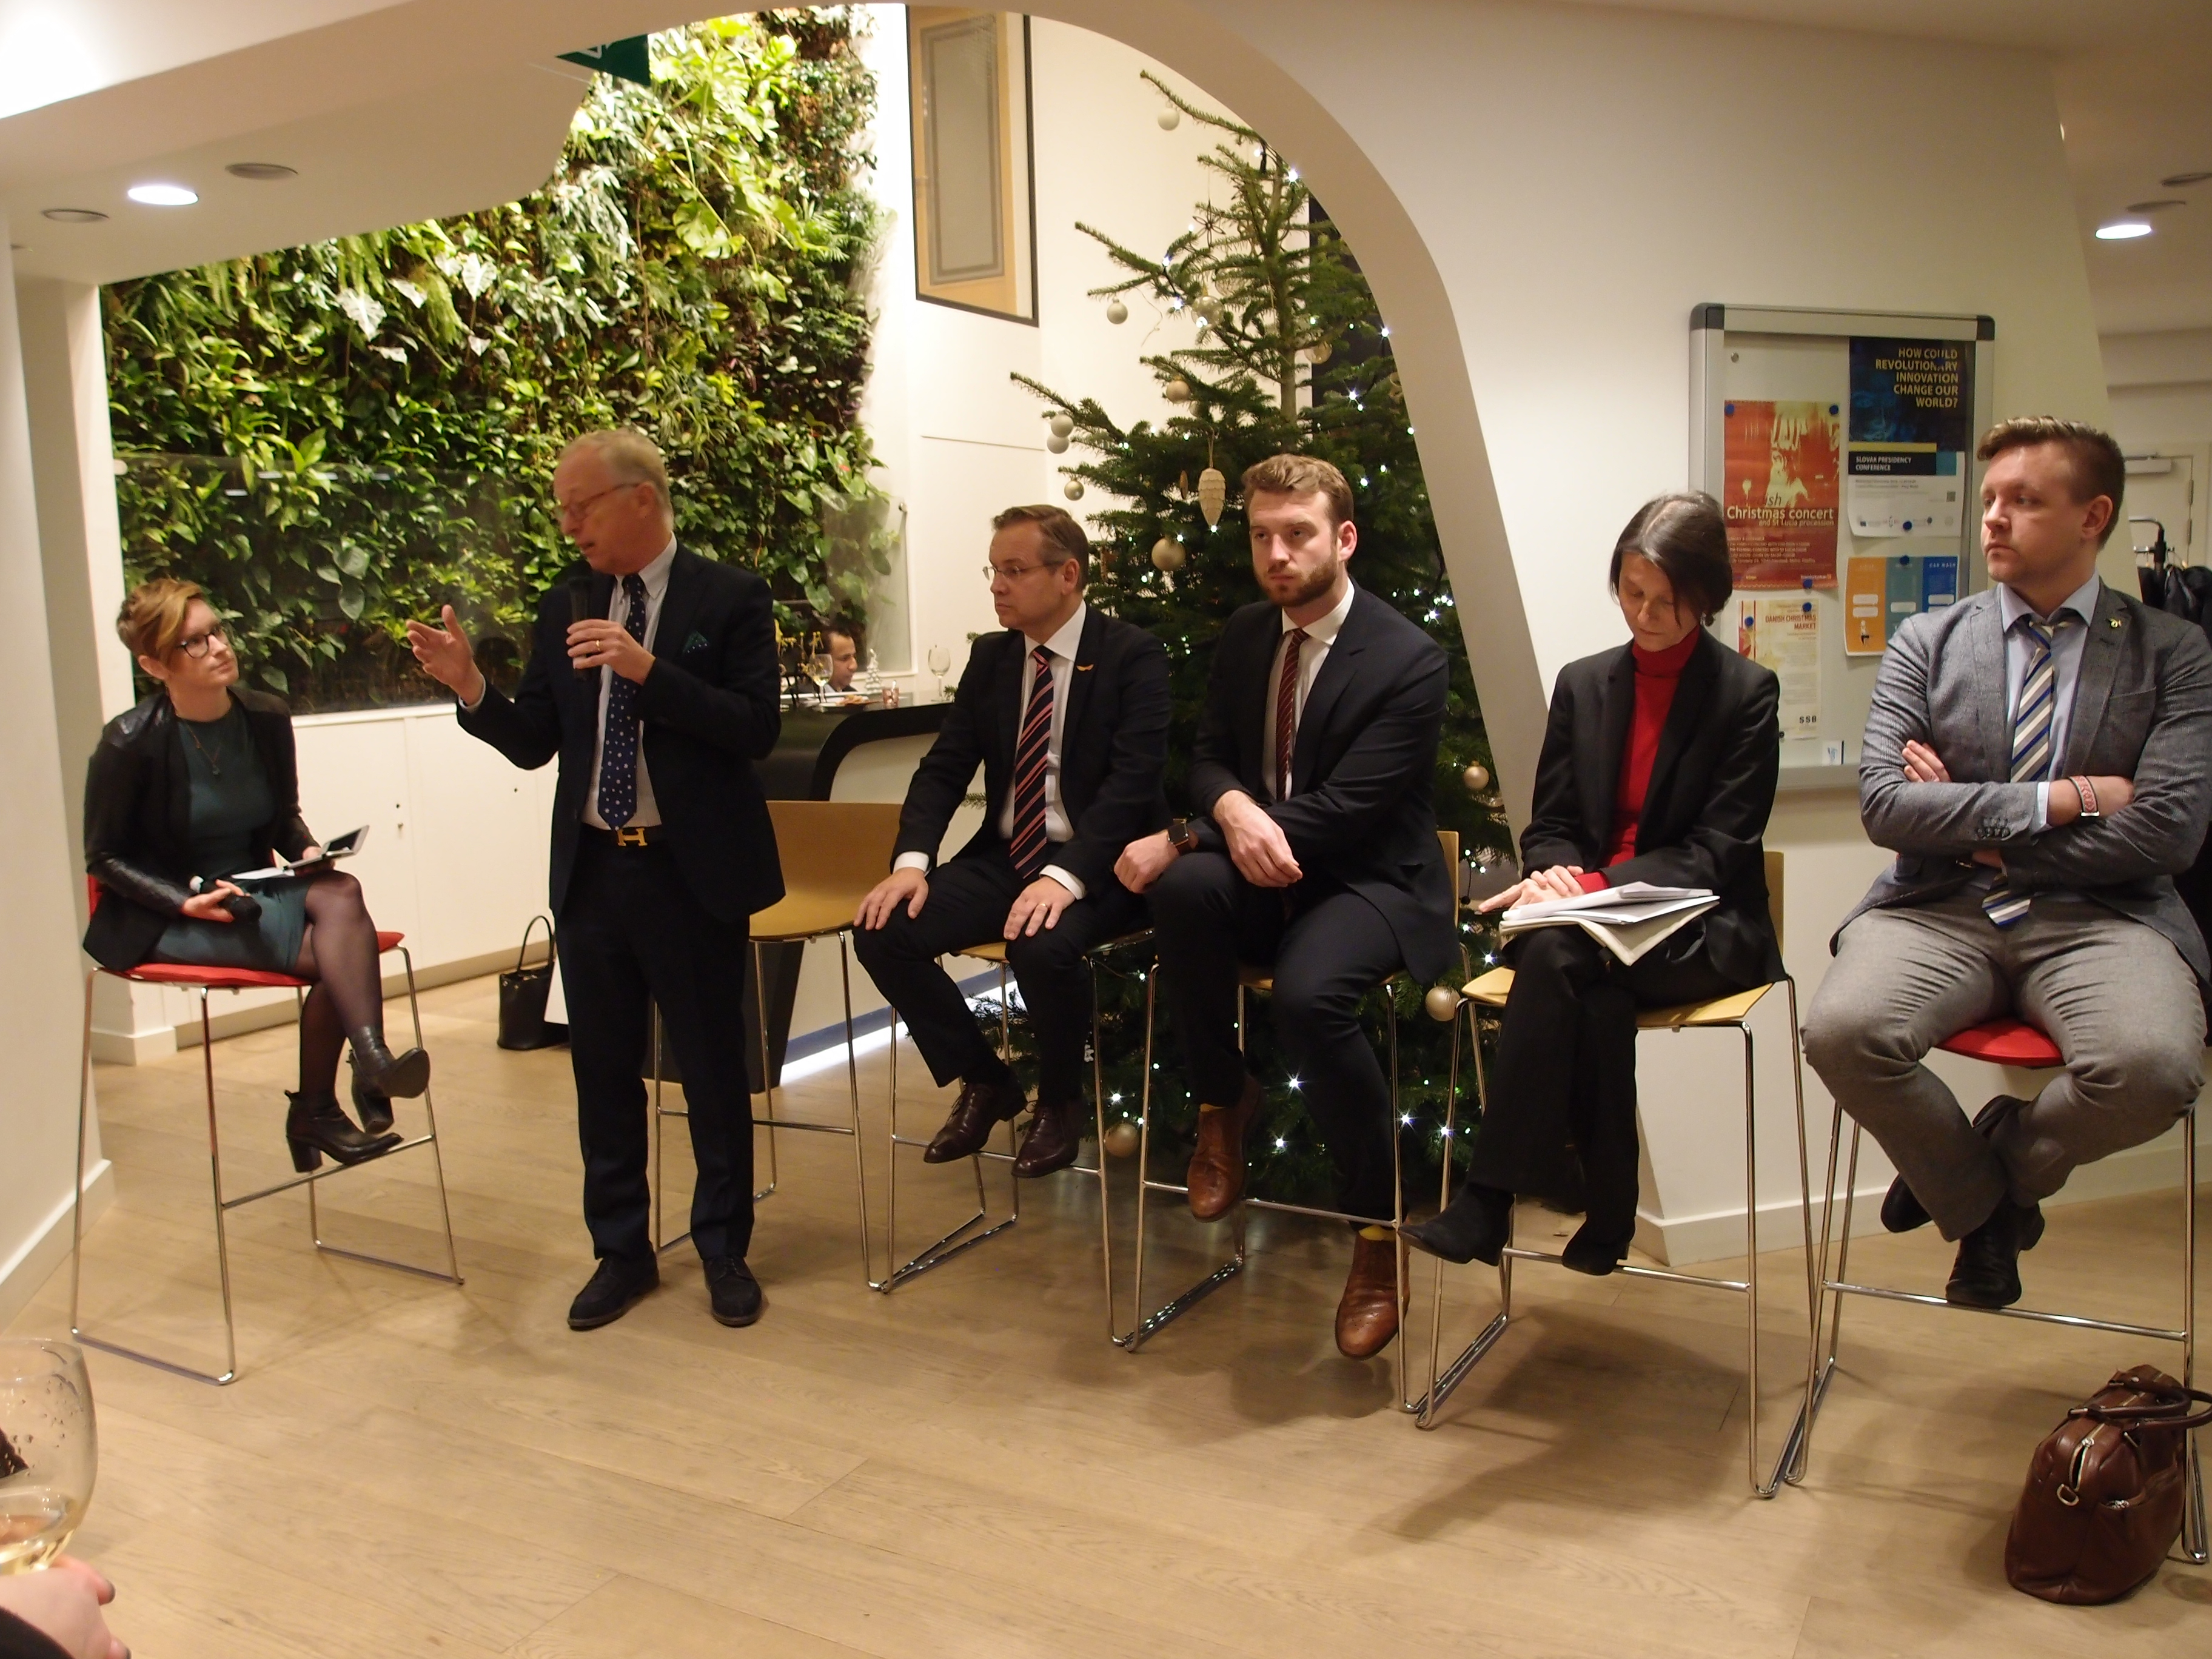 Participants for the discussion included the Swedish MEPs; Gunnar Hökmark (EPP), Fredrick Federley (ALDE), Jakop Dalunde (The Greens), Thérèse de Liedekerke, Deputy Director General at Business Europe and Jens Hedström from the Confederation of Swedish Enterprise.